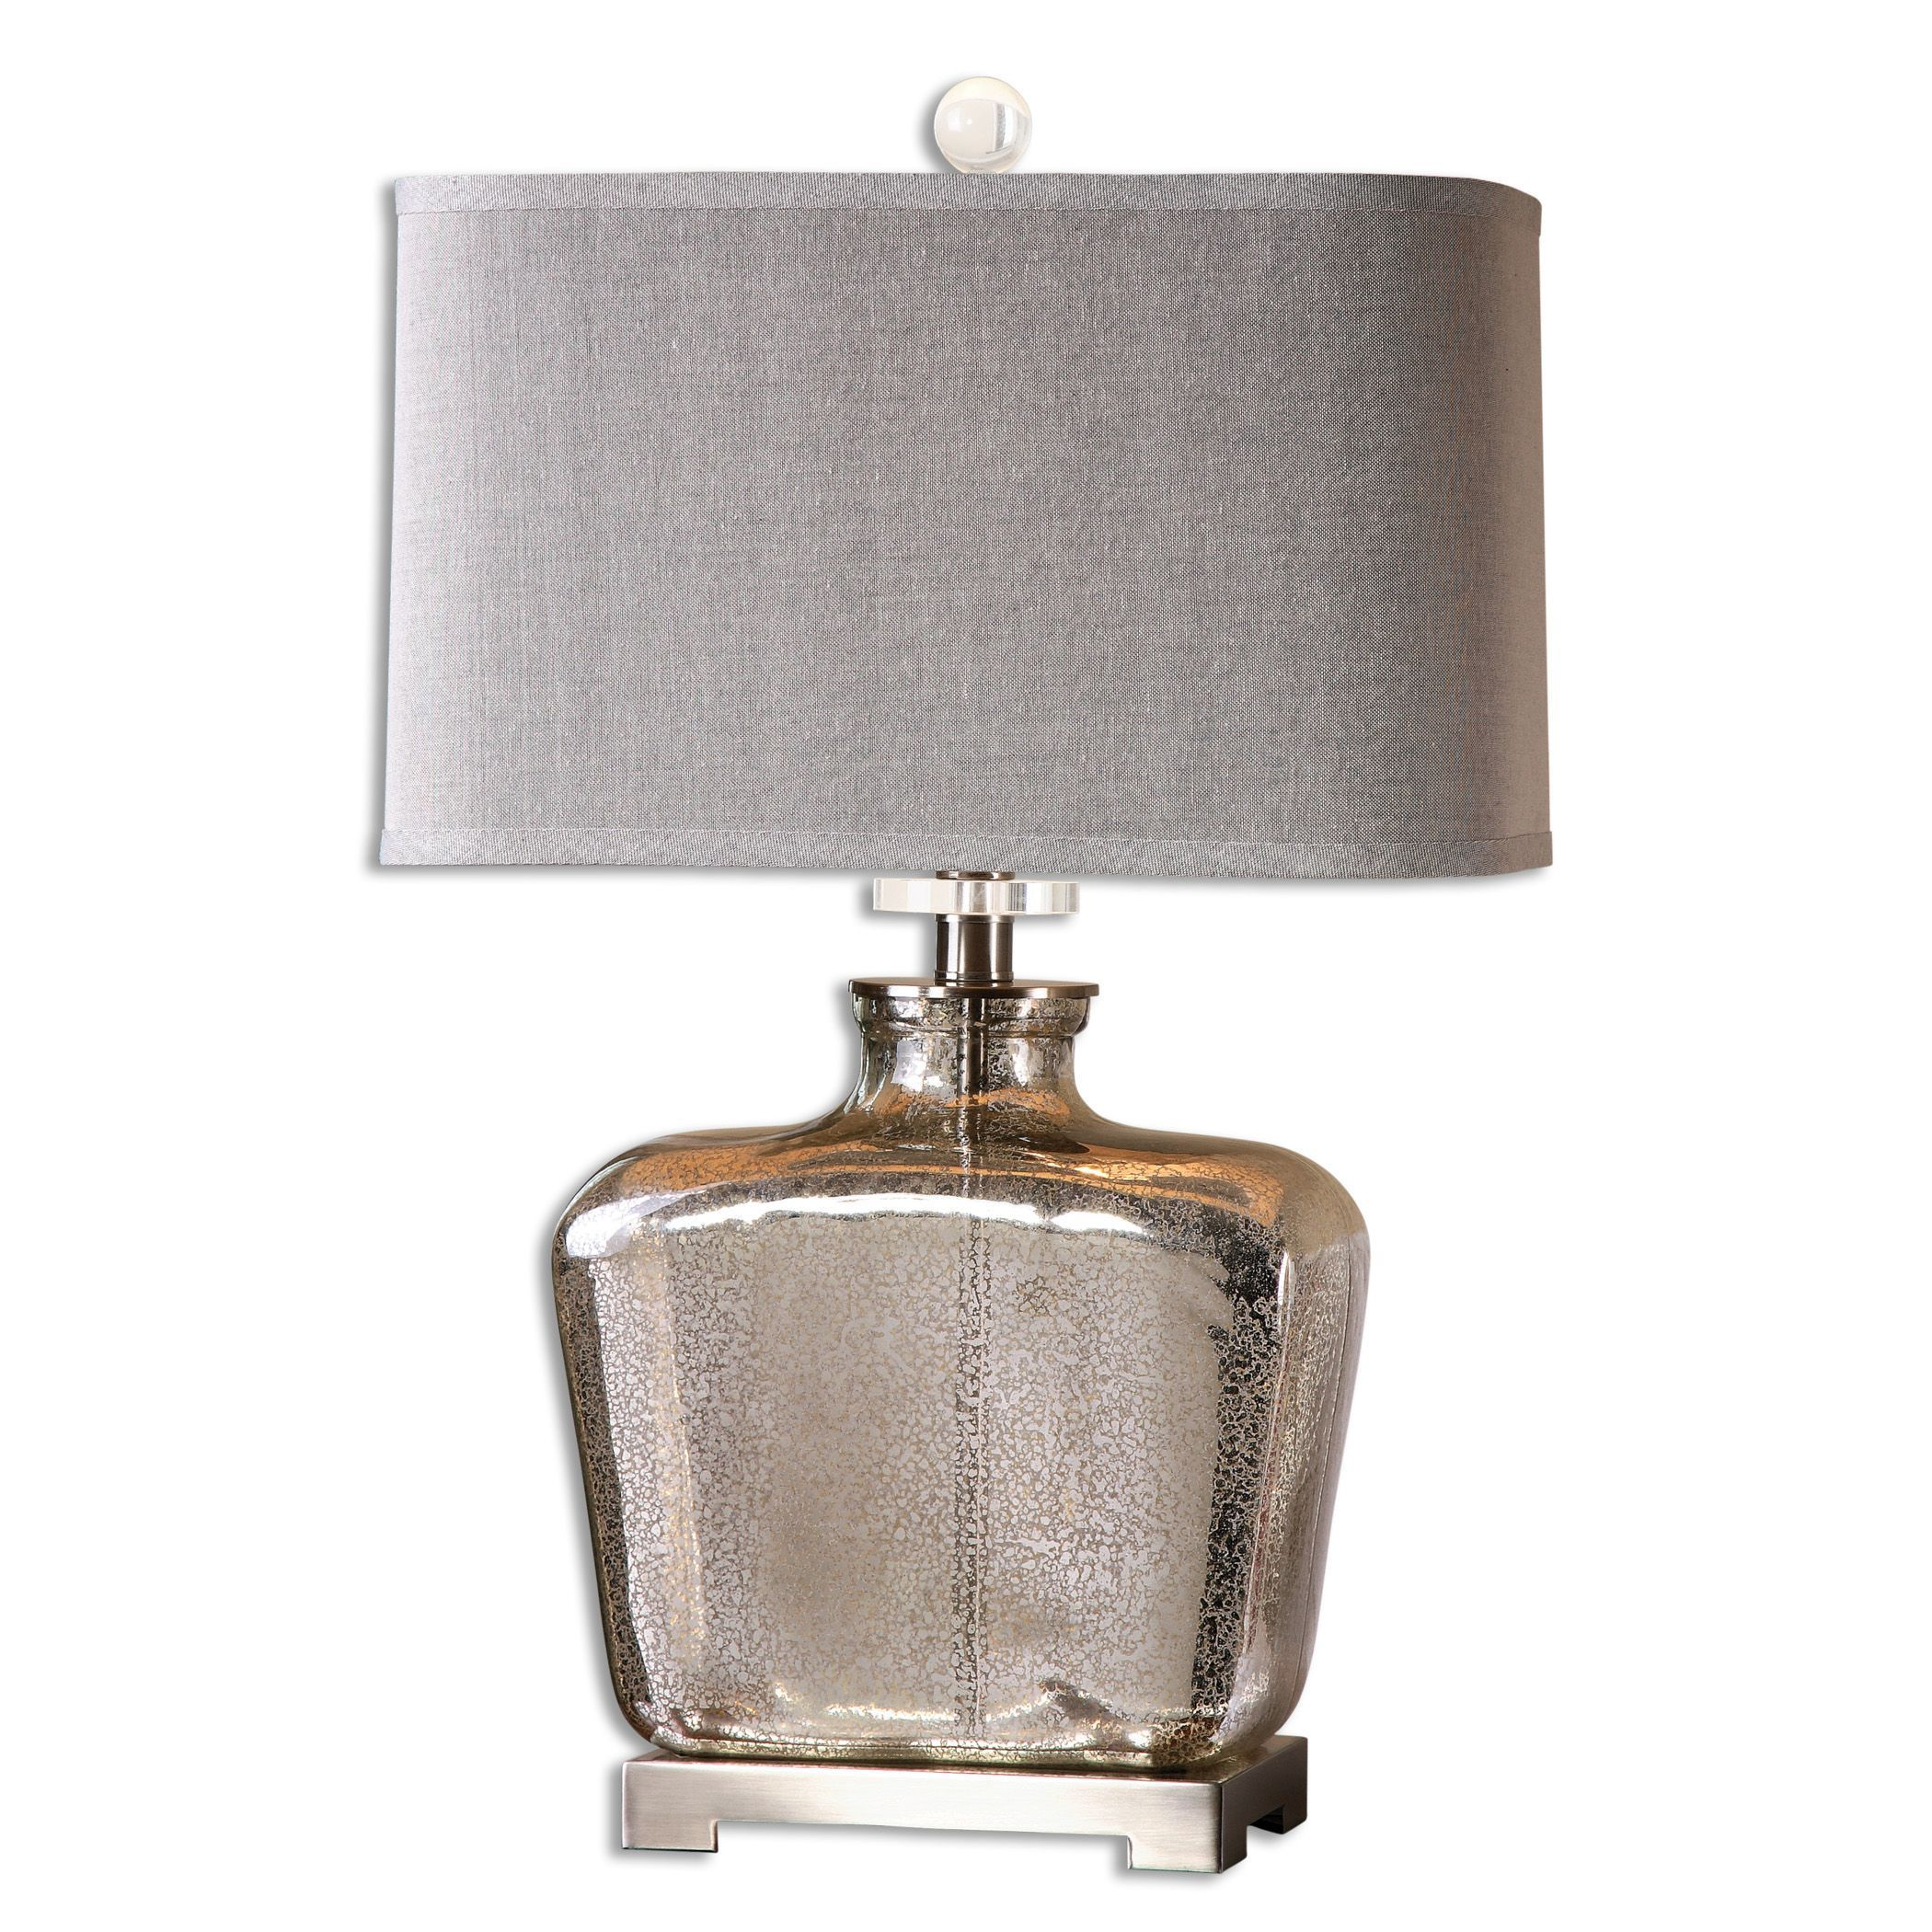 uttermost molinara 1 light speckled mercury glass table lamp. Black Bedroom Furniture Sets. Home Design Ideas